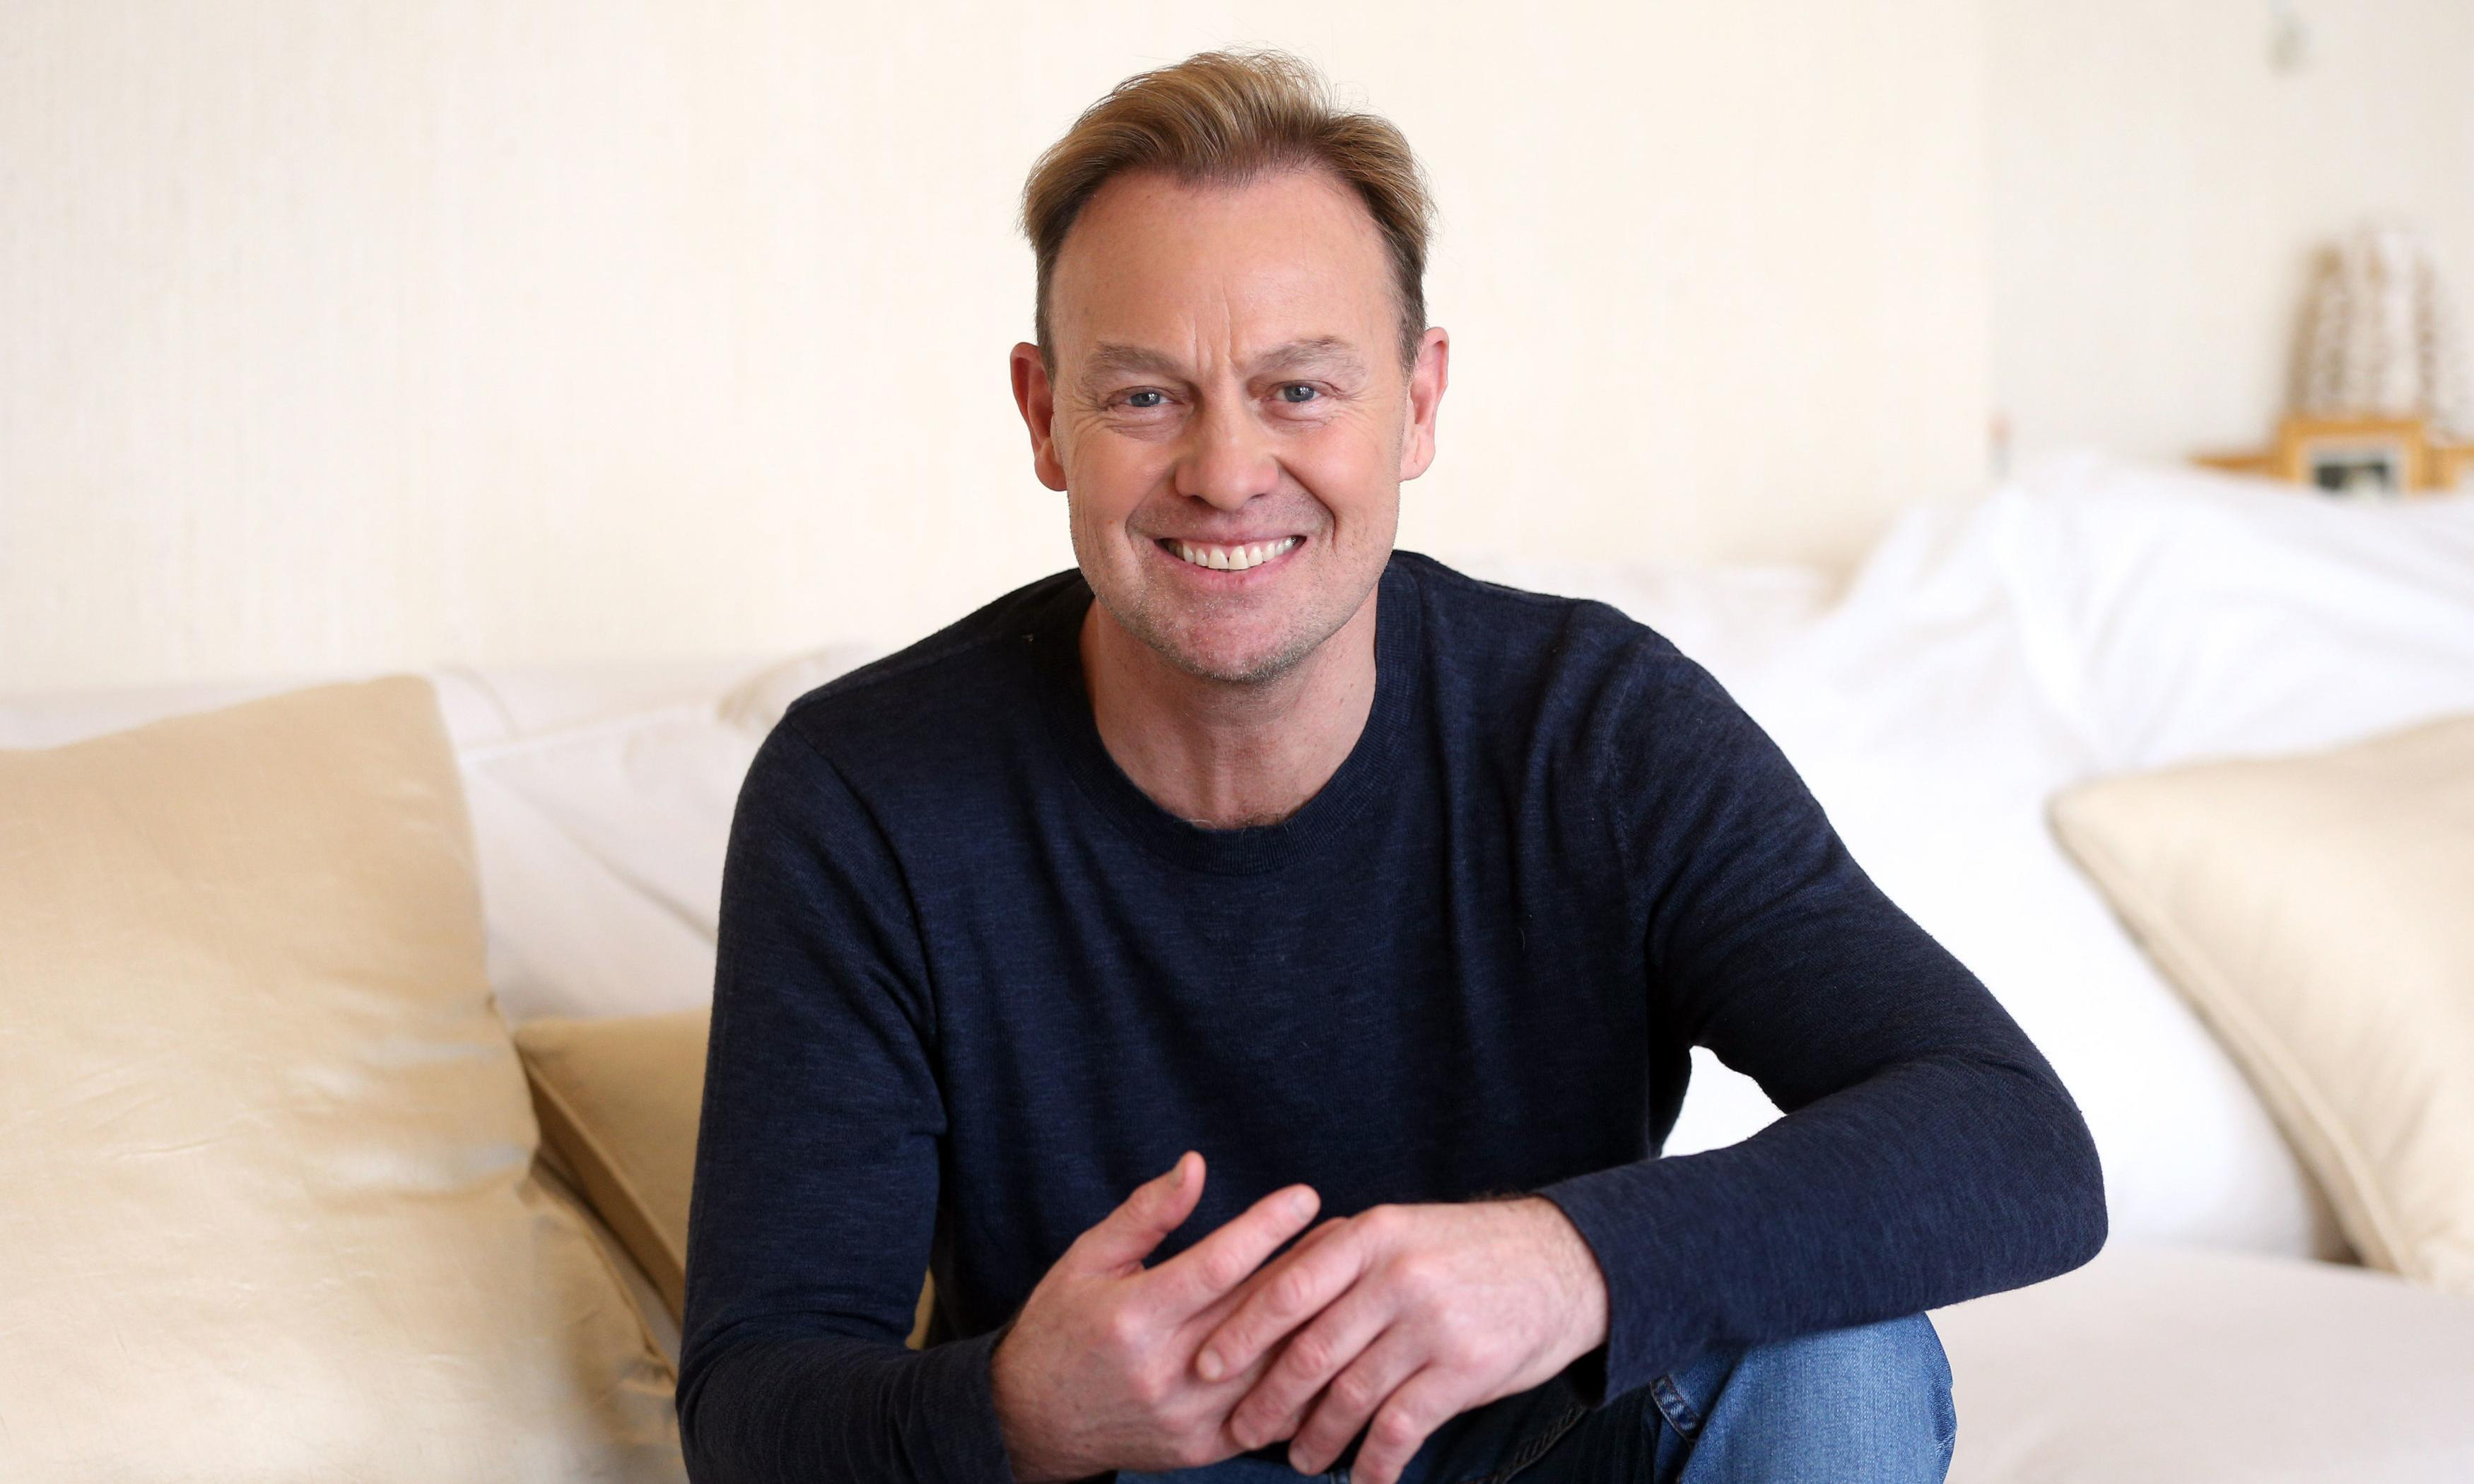 Jason Donovan a good neighbour as he goes out in pants to fight fire